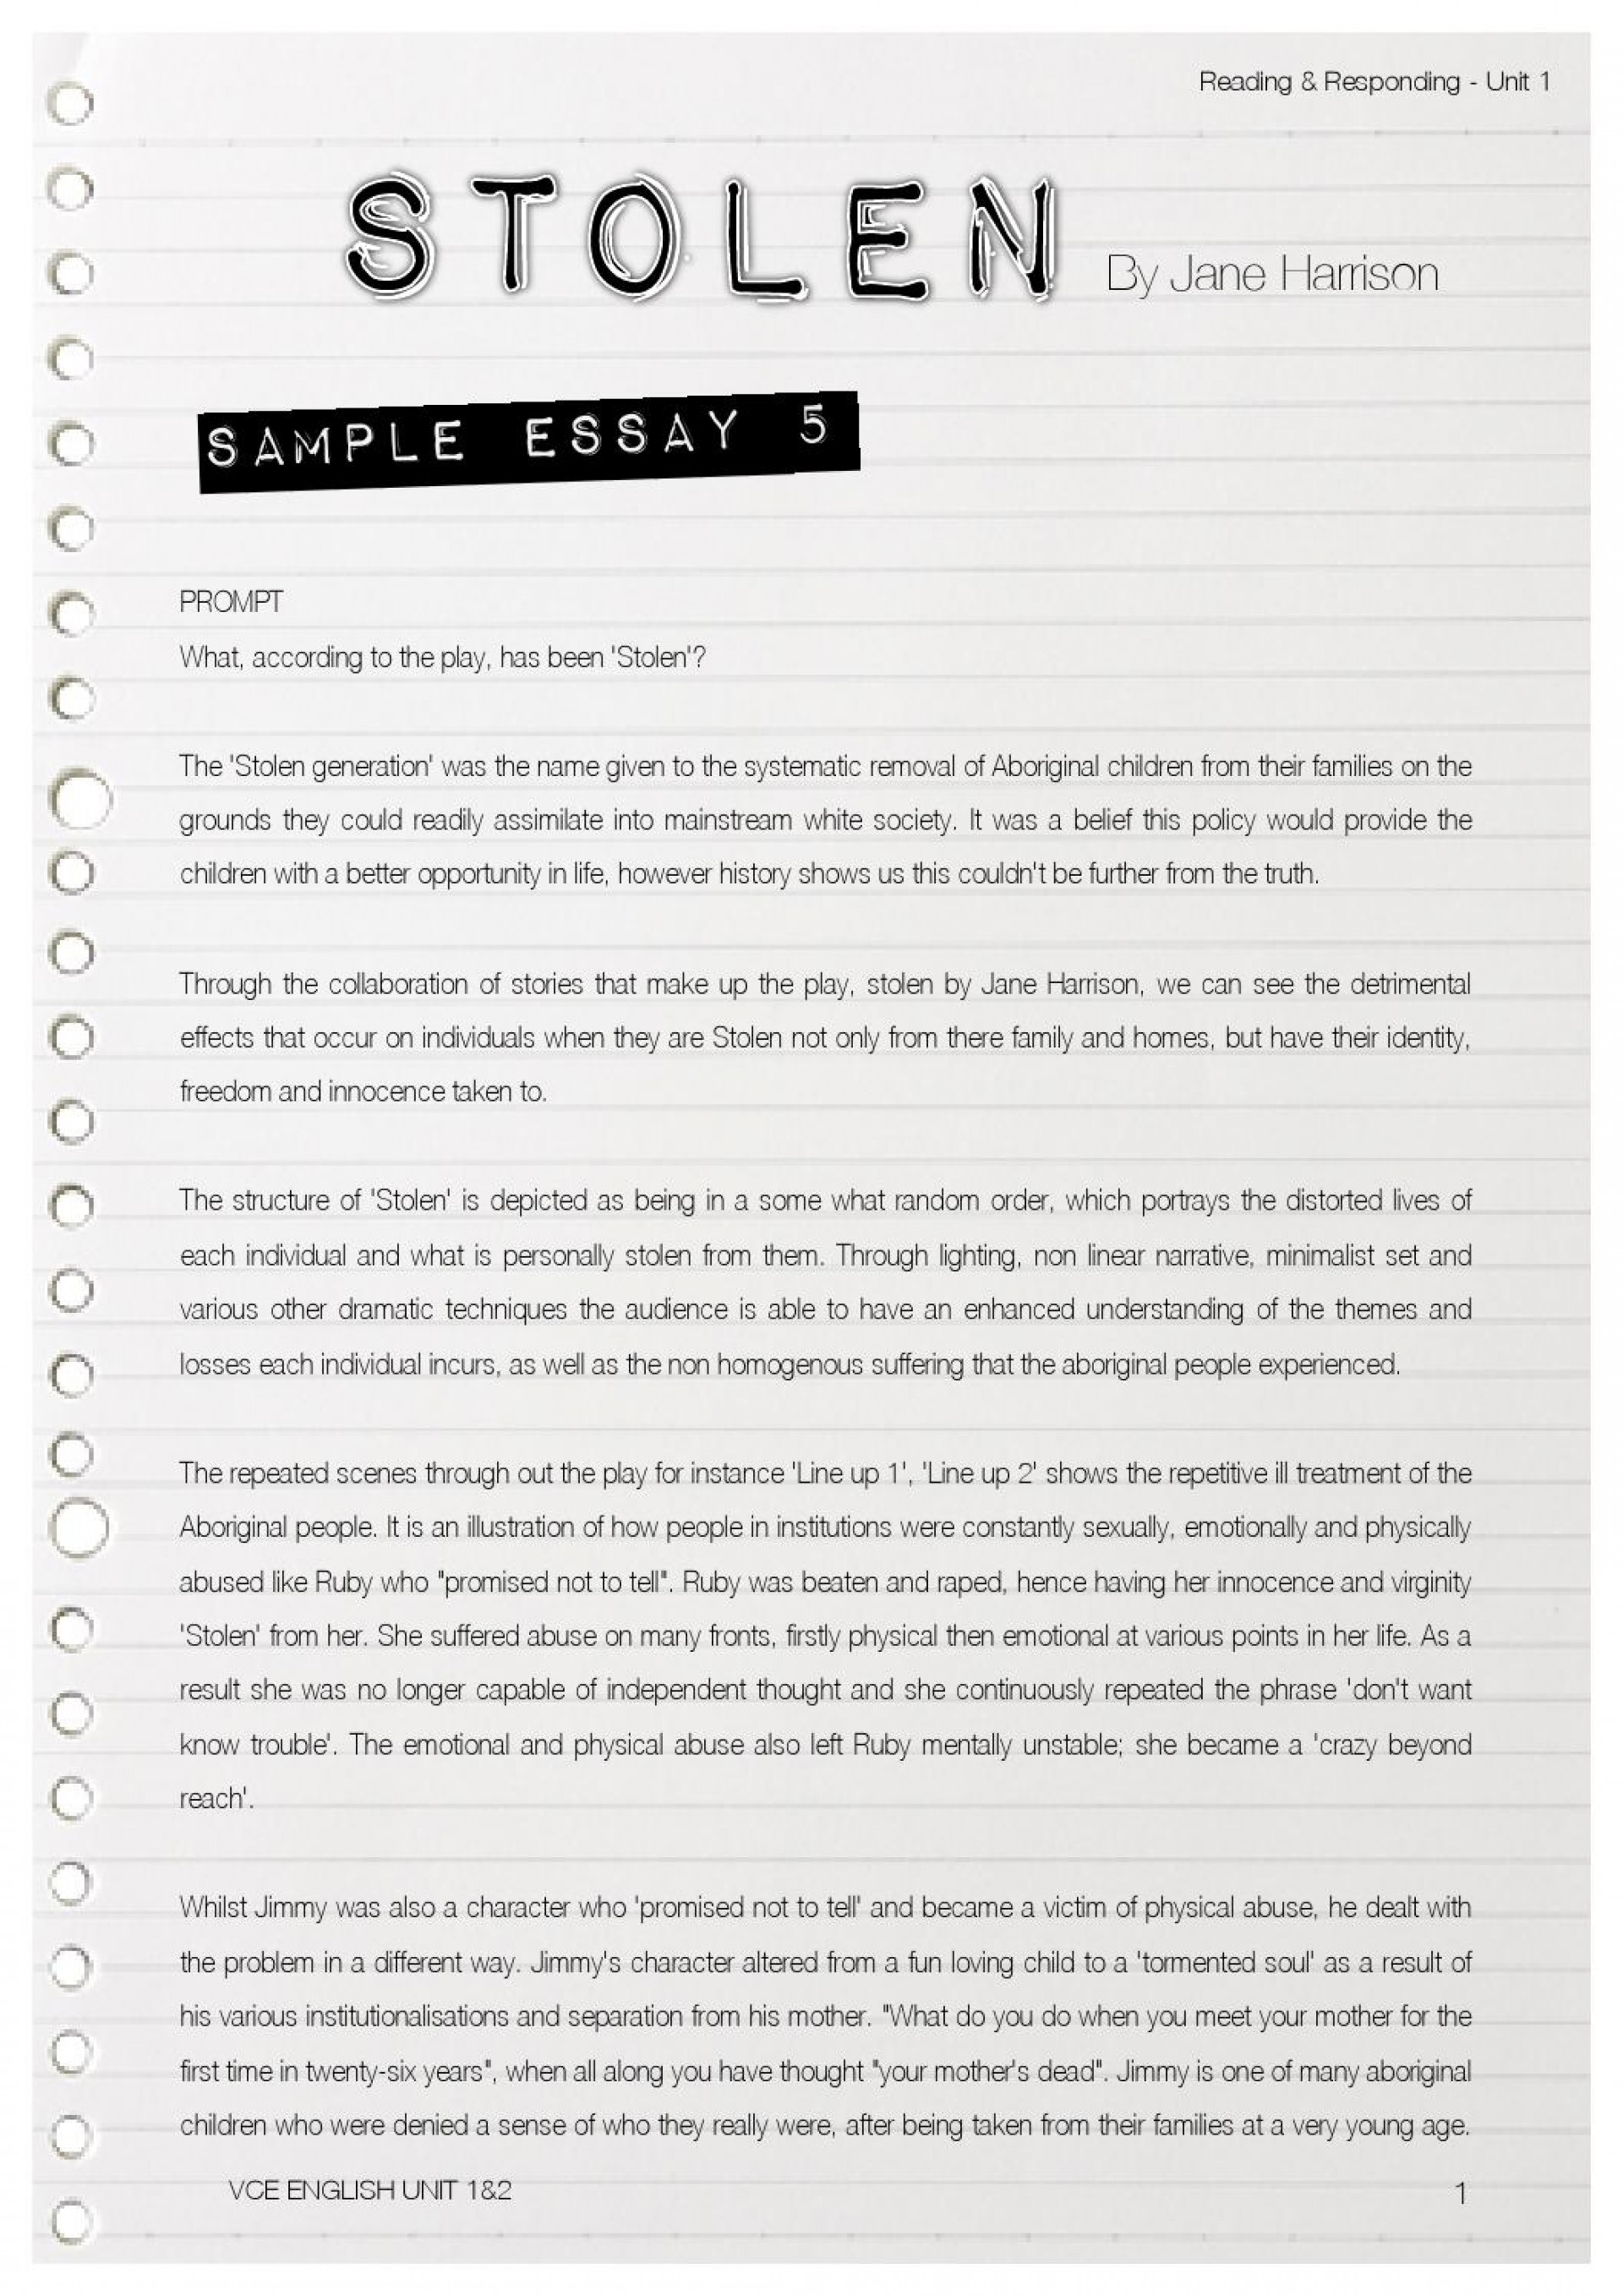 009 Essay On The Stolen Generation Example Page 1 Singular Questions Indigenous Studies Reflection 1920